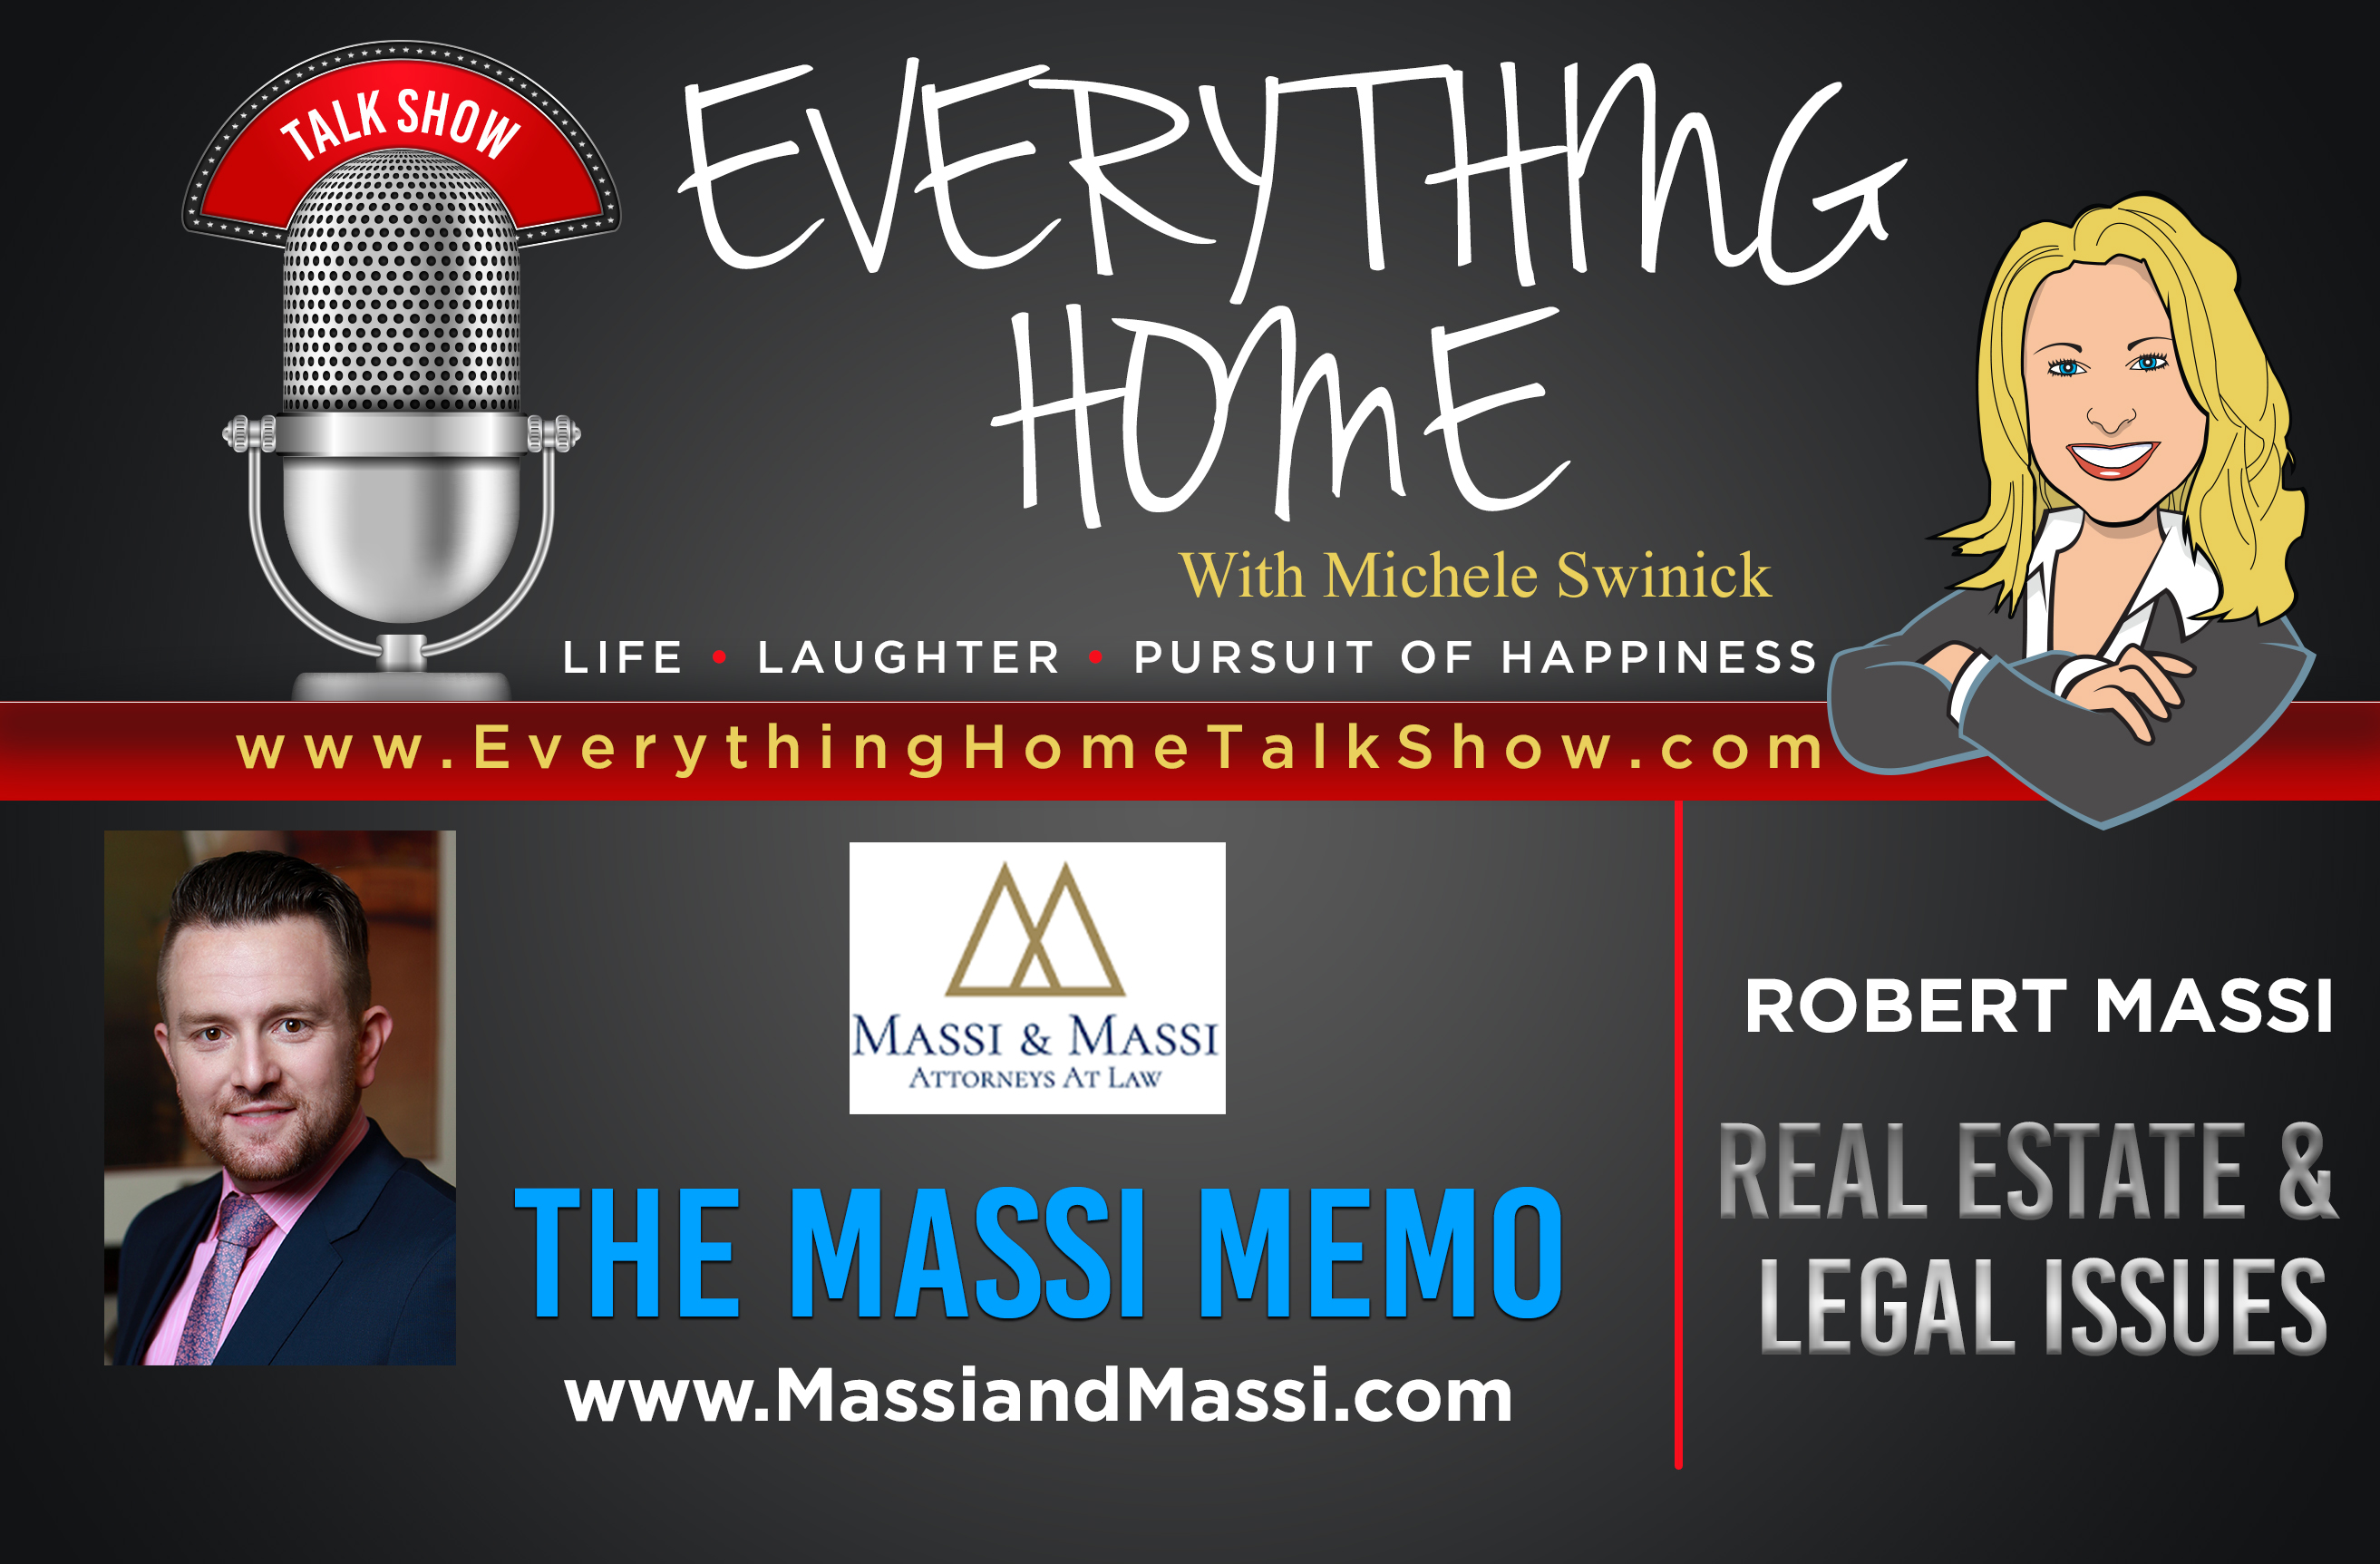 #96: Legal Issues - Life Changing Advice & Laughs - 10 Topics That Touch Everyone